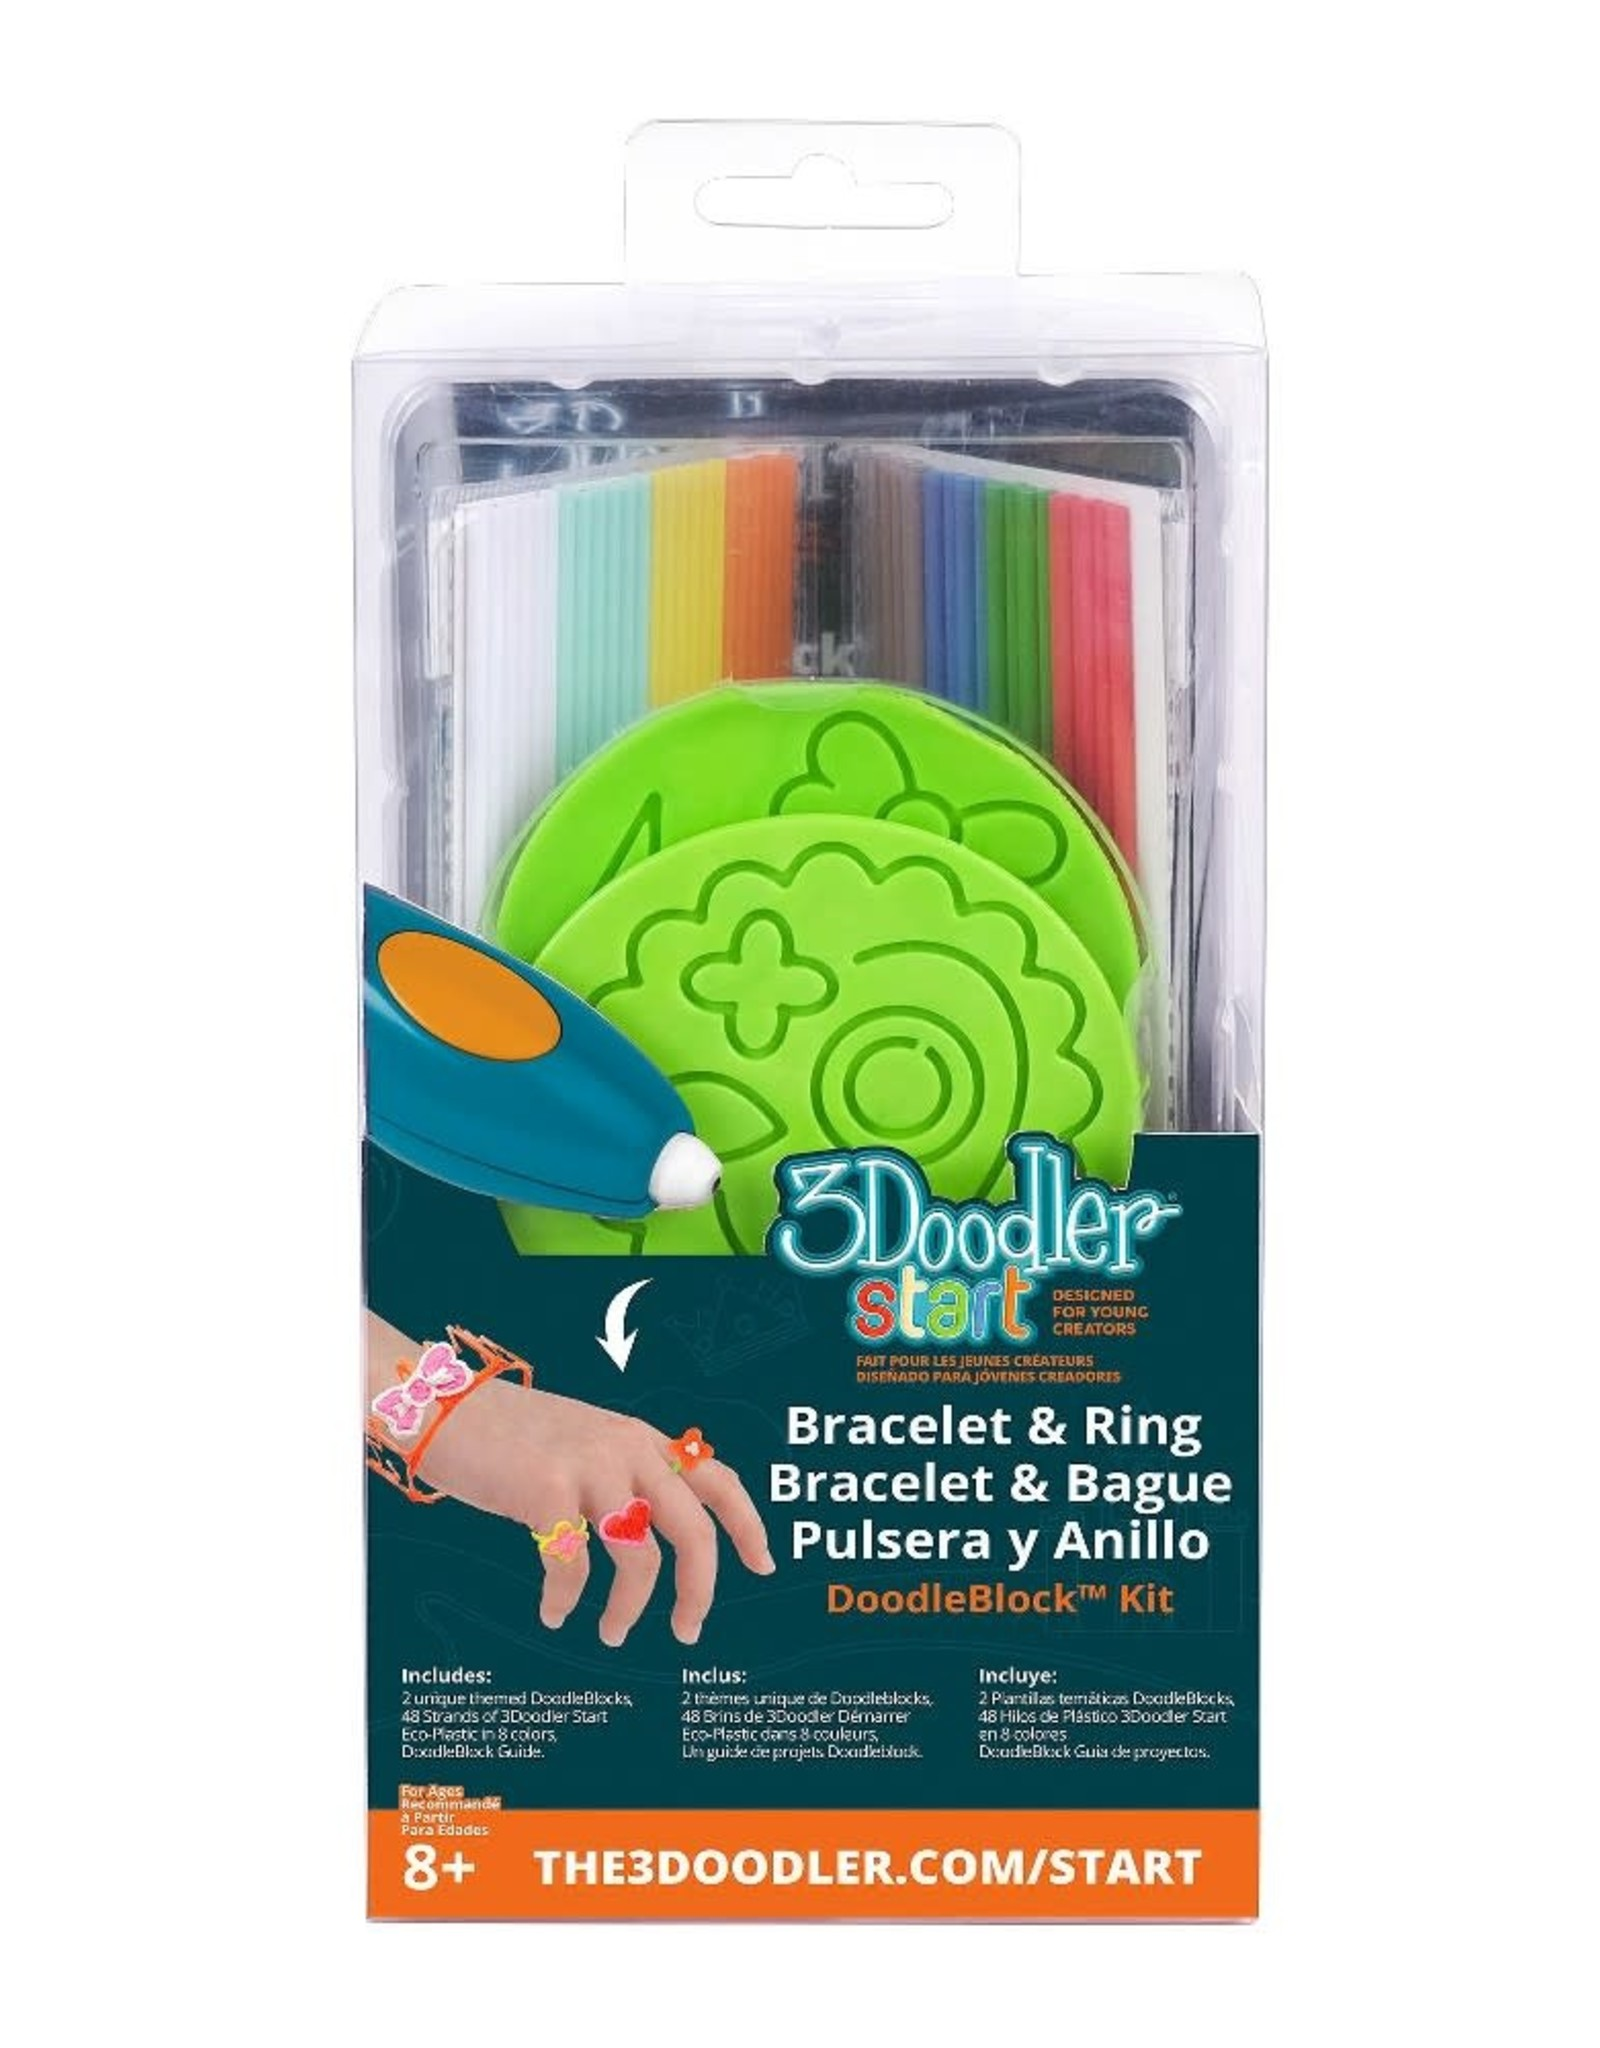 3Doodler DoodleBlocks Jewelry K